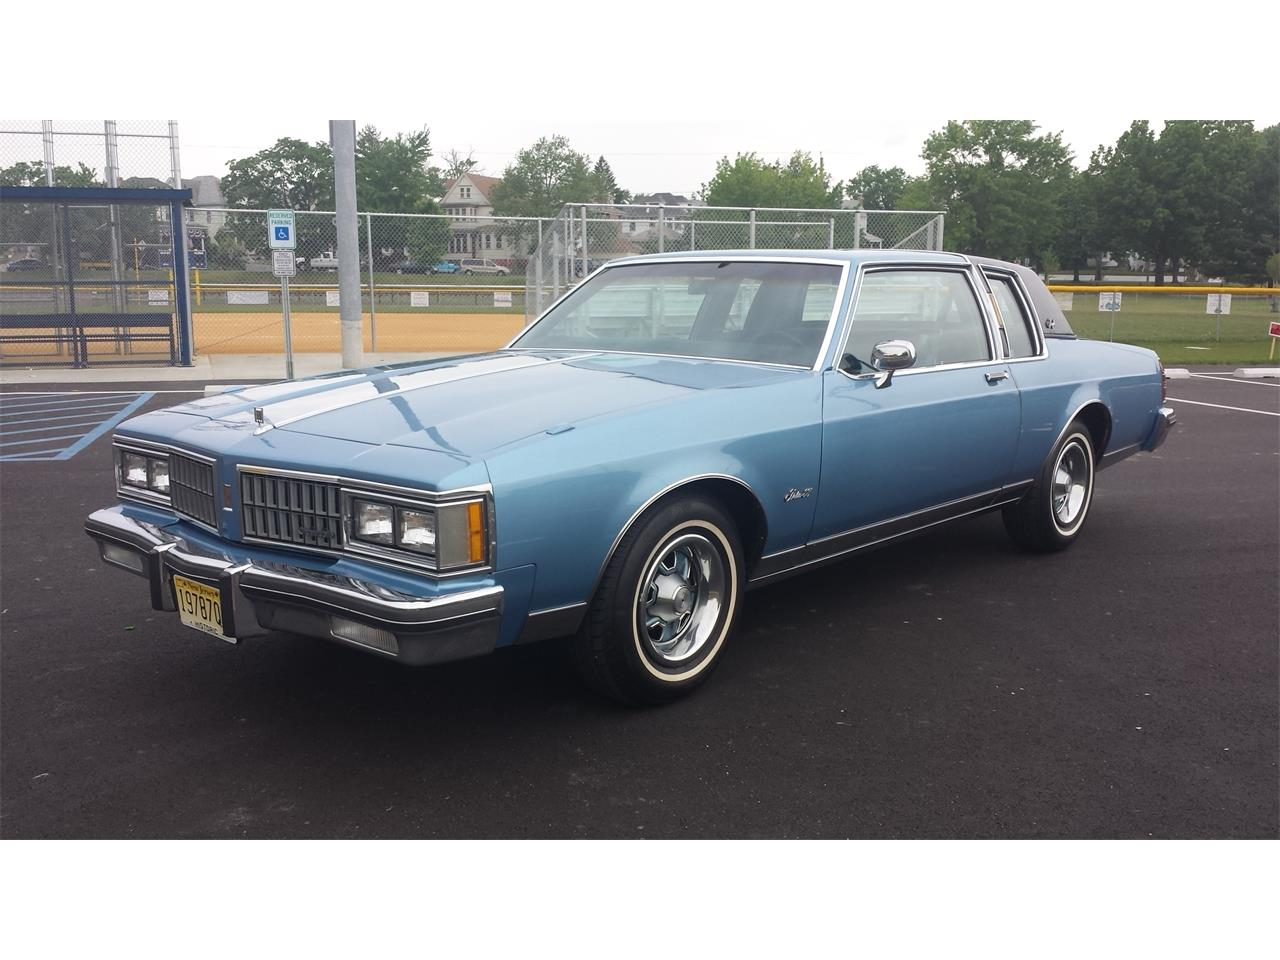 Large Picture of '81 Oldsmobile Delta 88 Royale Offered by a Private Seller - Q7LZ